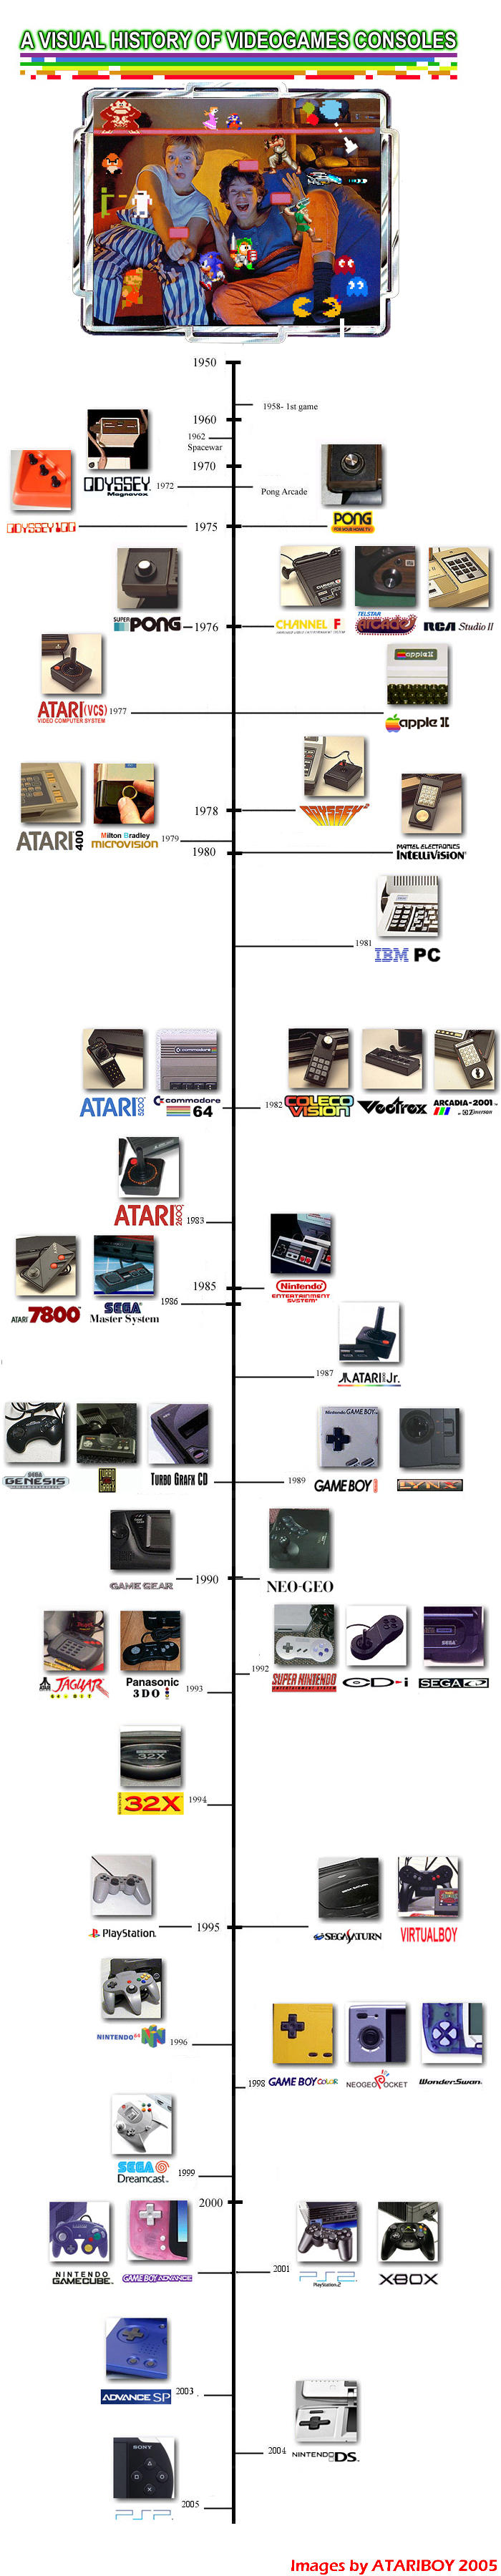 Time-line Of Home Video Games. by Atariboy2600 on DeviantArt